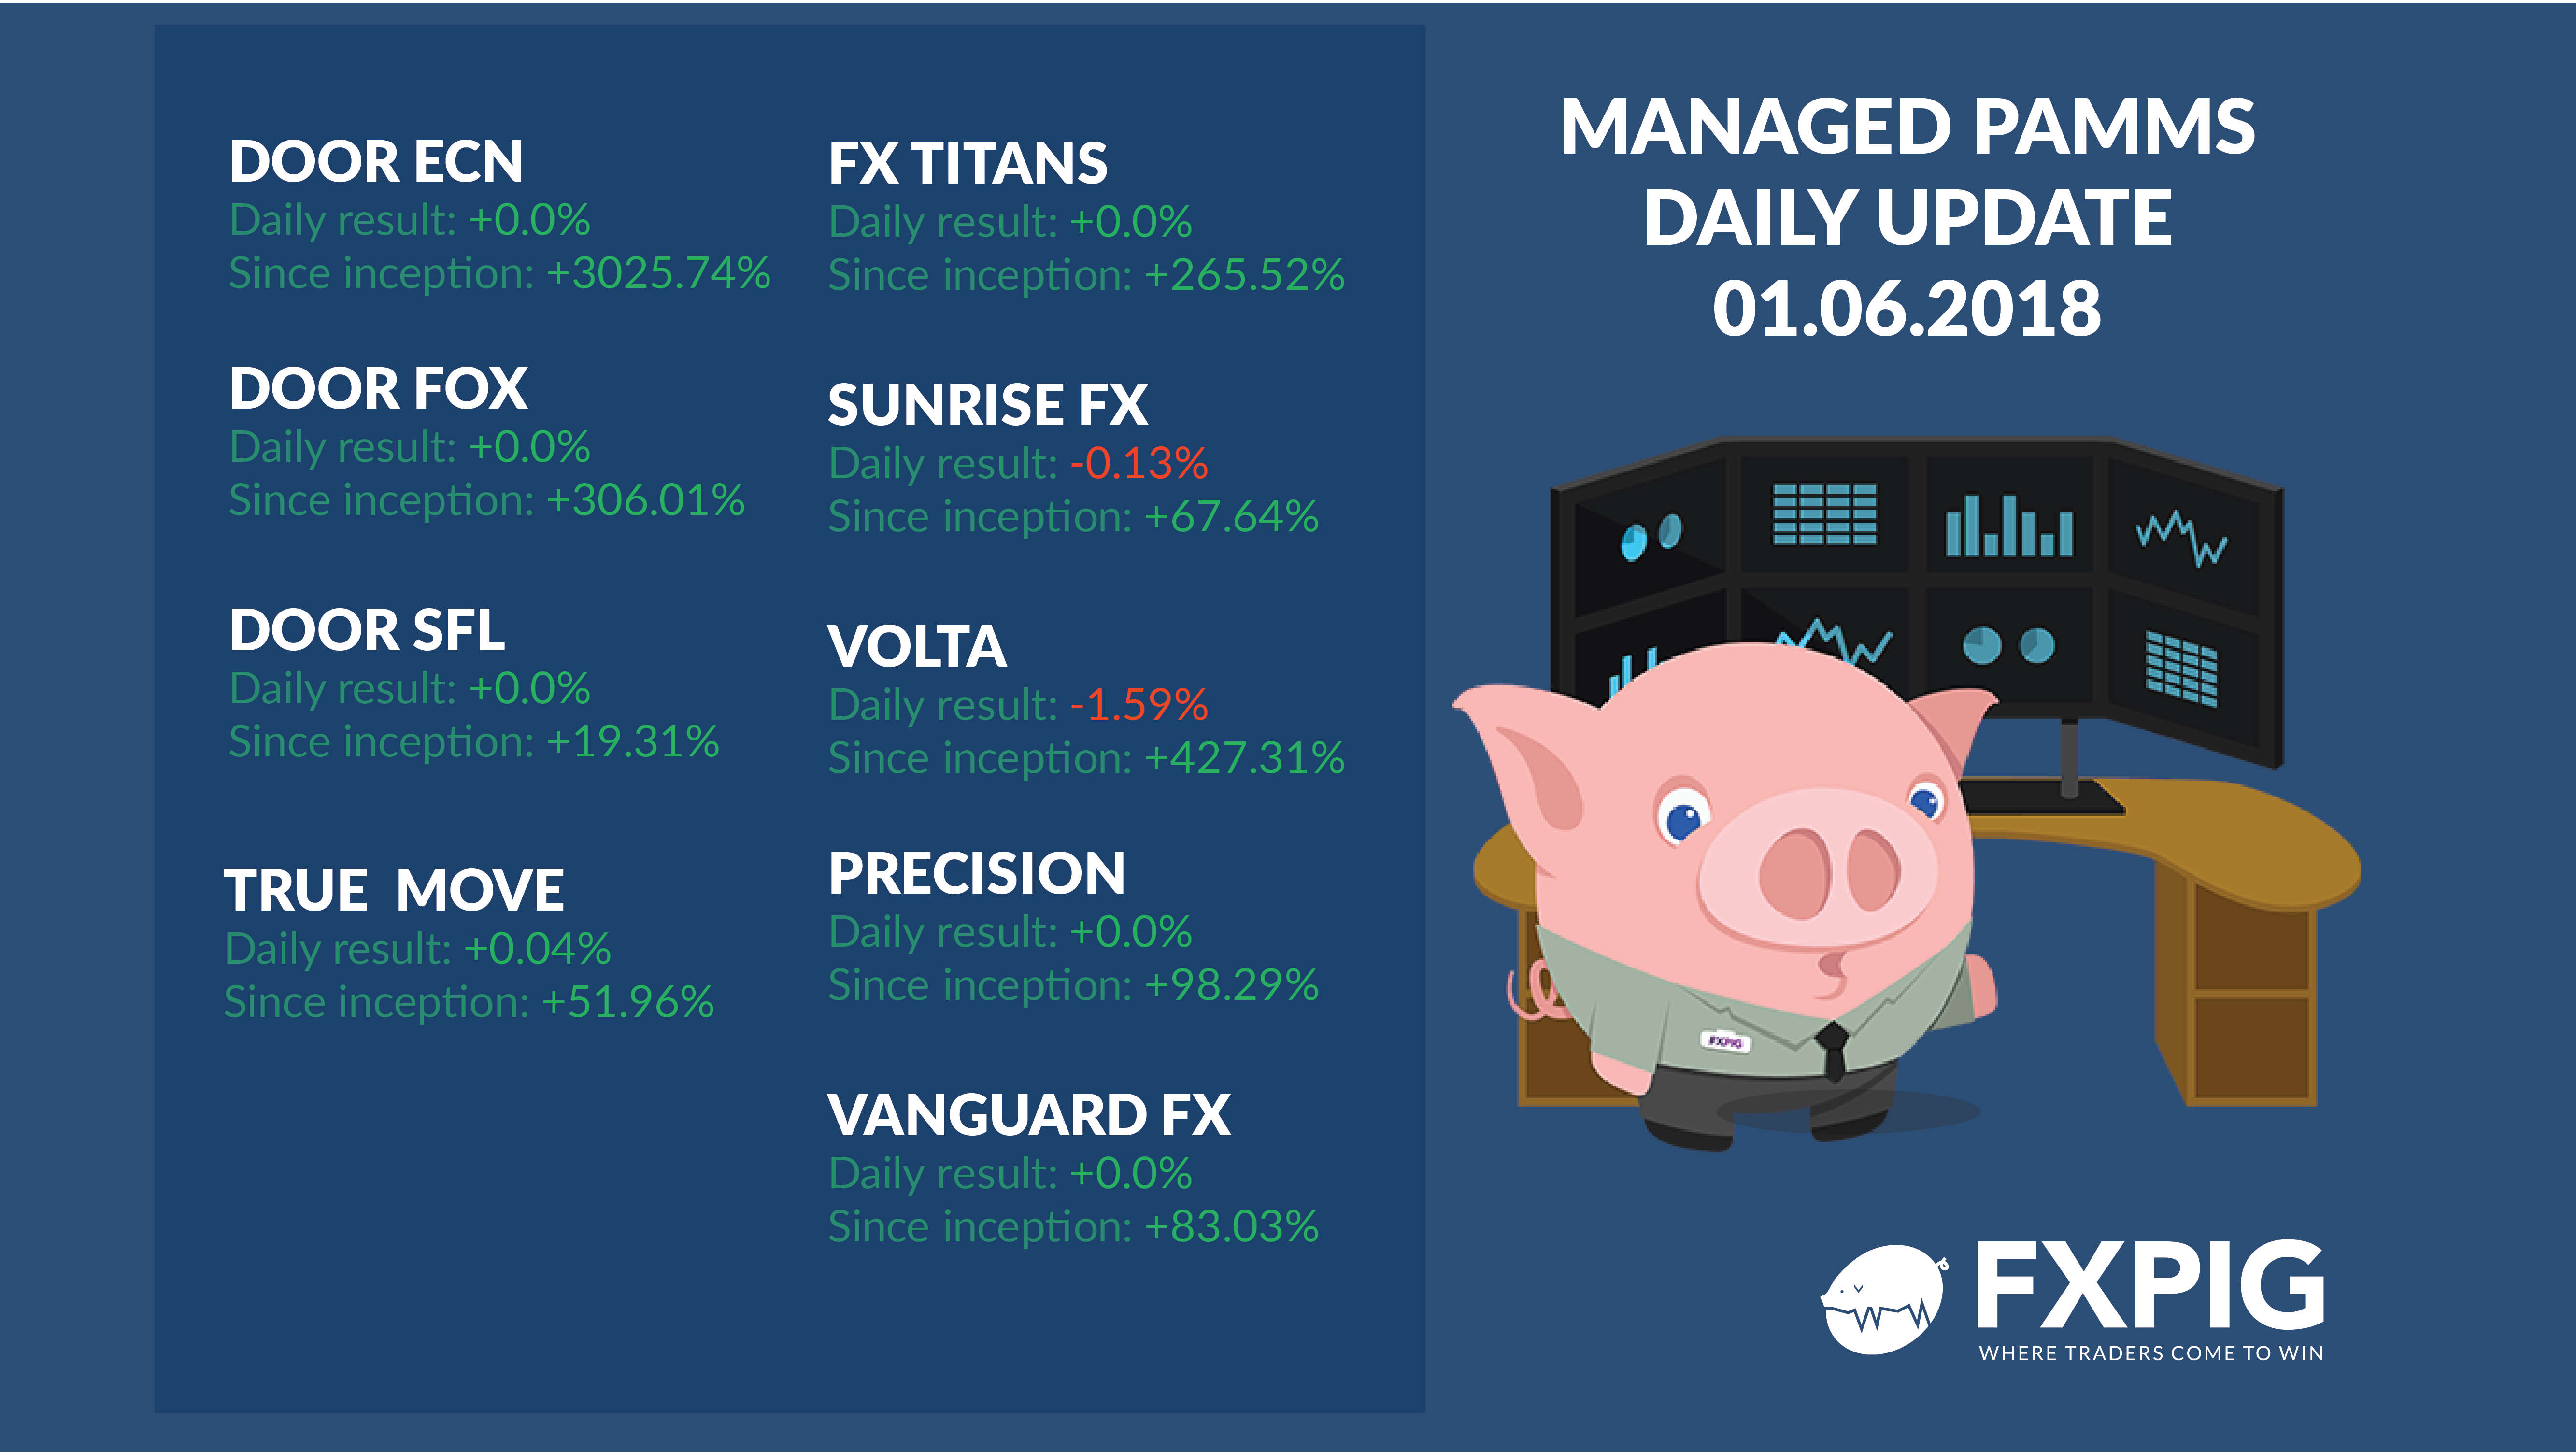 FOREX_Managed-accounts-daily-results_FXPIG_01-06-2018